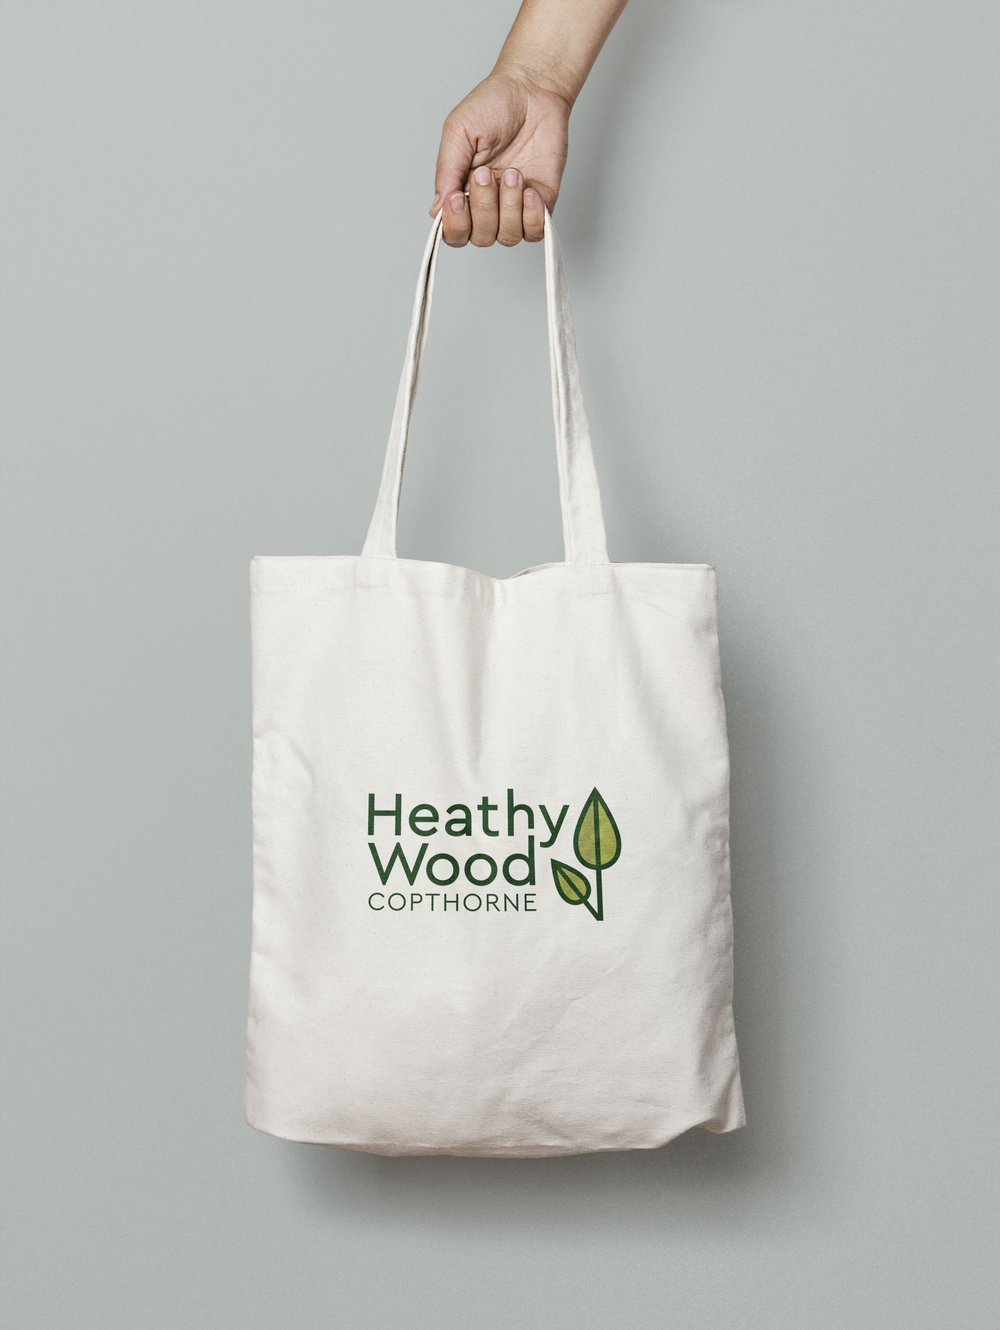 heathy wood bag mockup